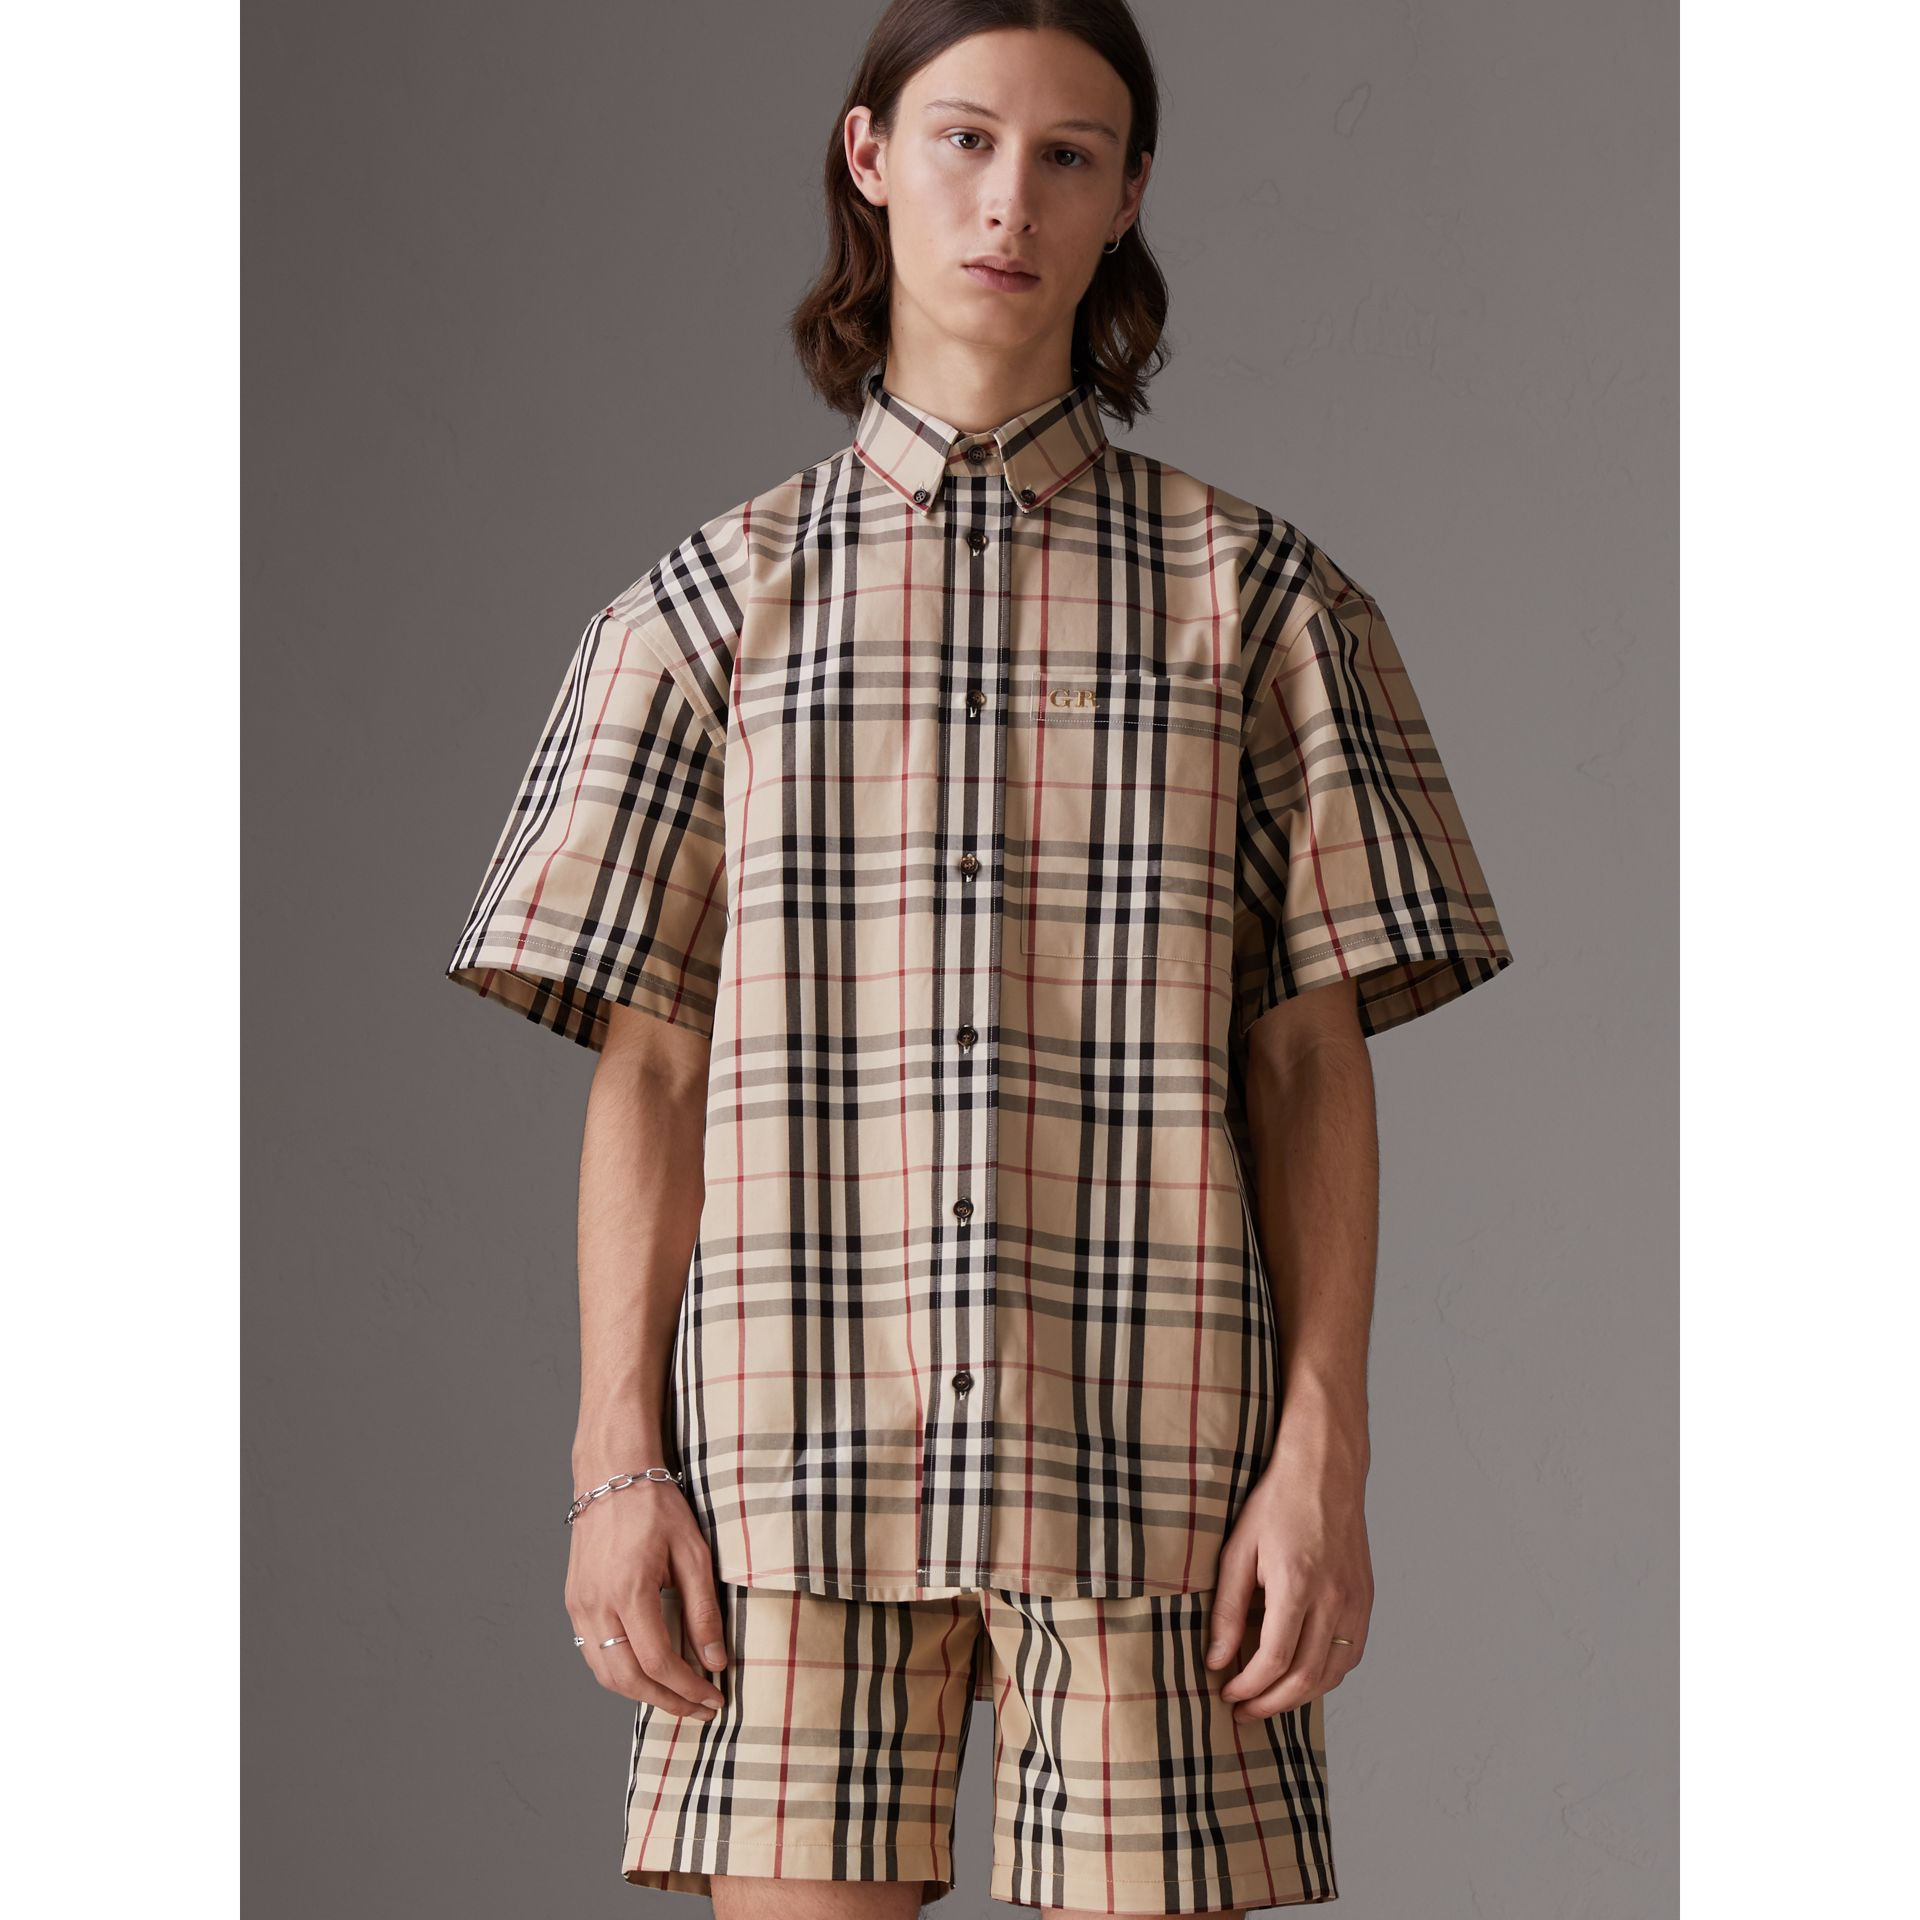 Gosha x Burberry Short-sleeve Check Shirt in Honey | Burberry United States - gallery image 0